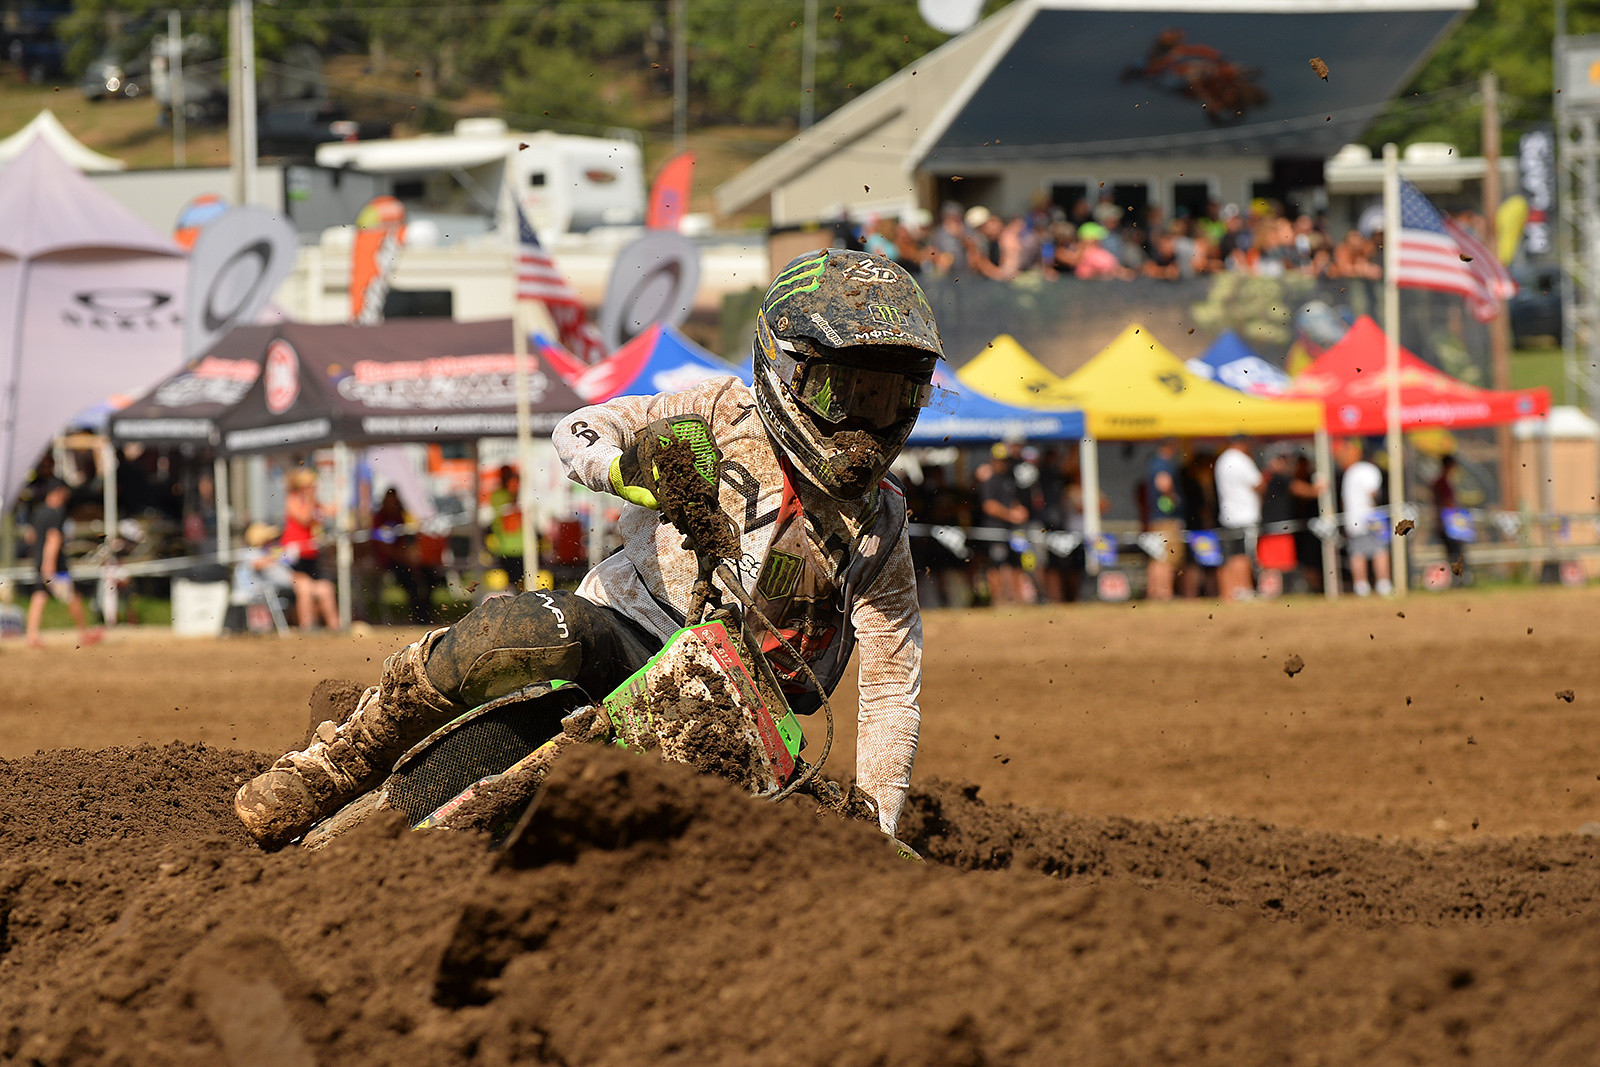 Dylan Schwartz has been a Moto-winner and podium guy in the Supermini classes all week at Loretta Lynn's.